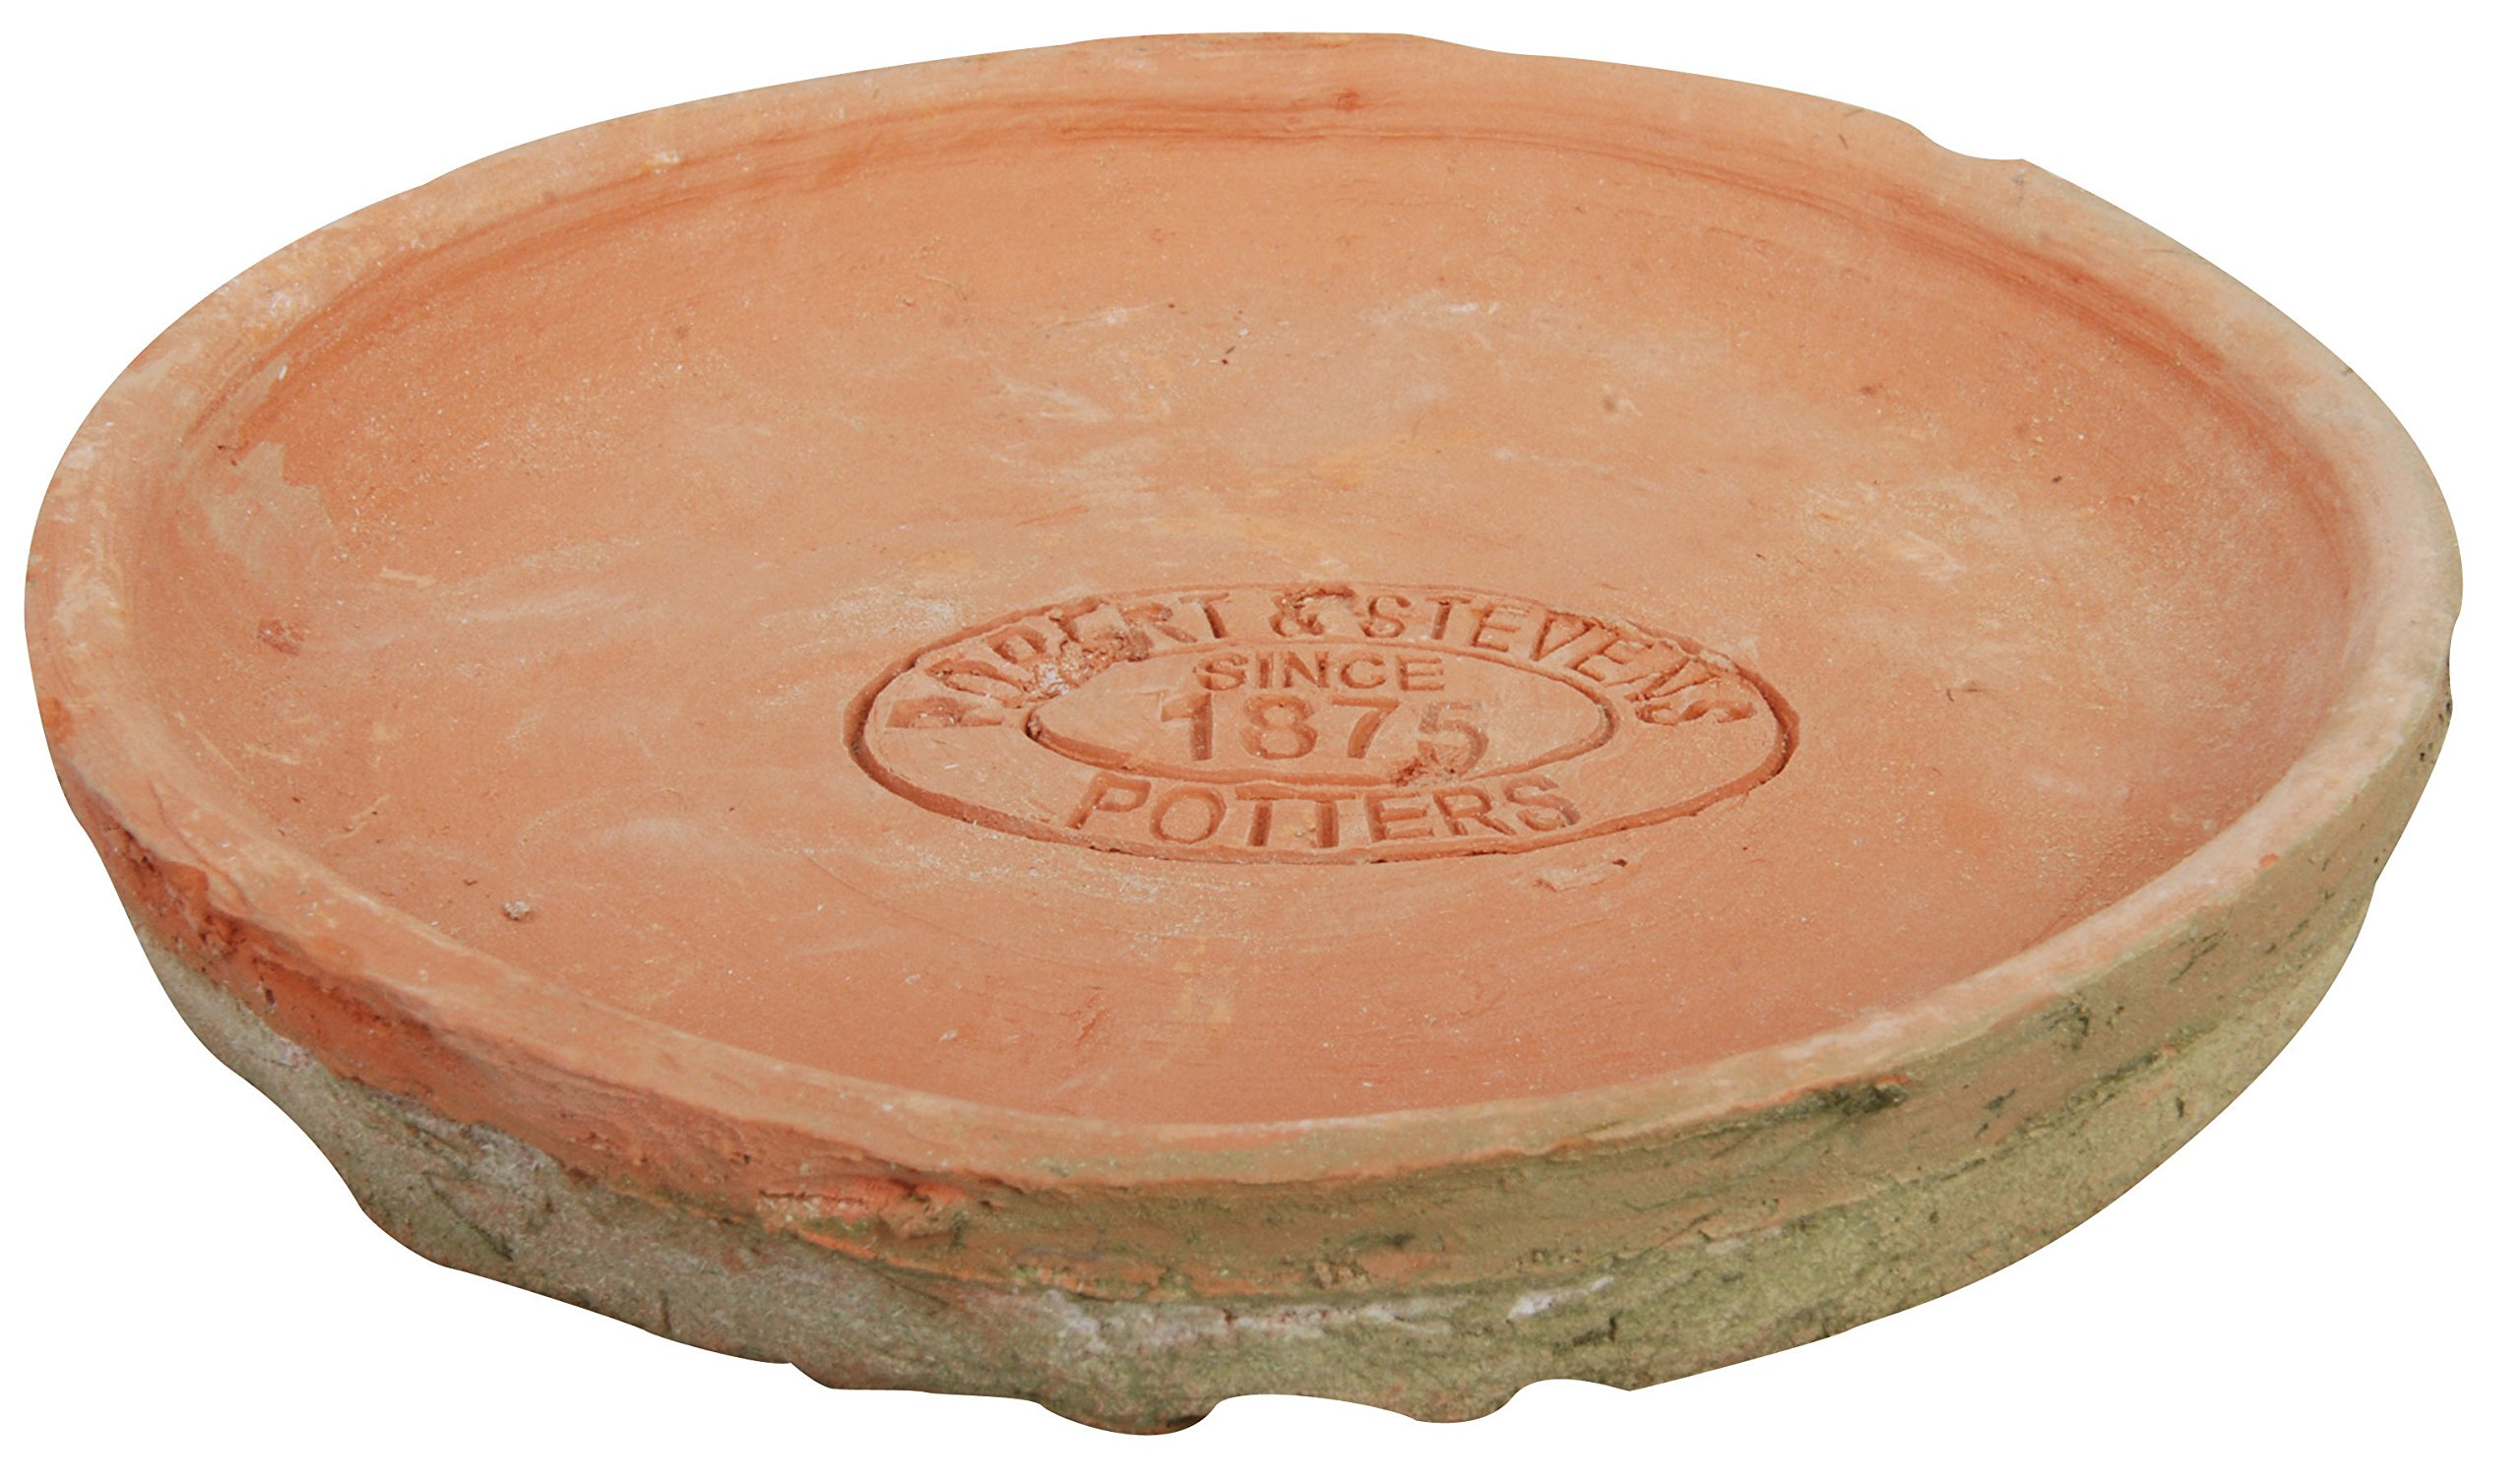 Esschert Design AT04 Aged Terracotta Saucer for AT03 by Esschert Design